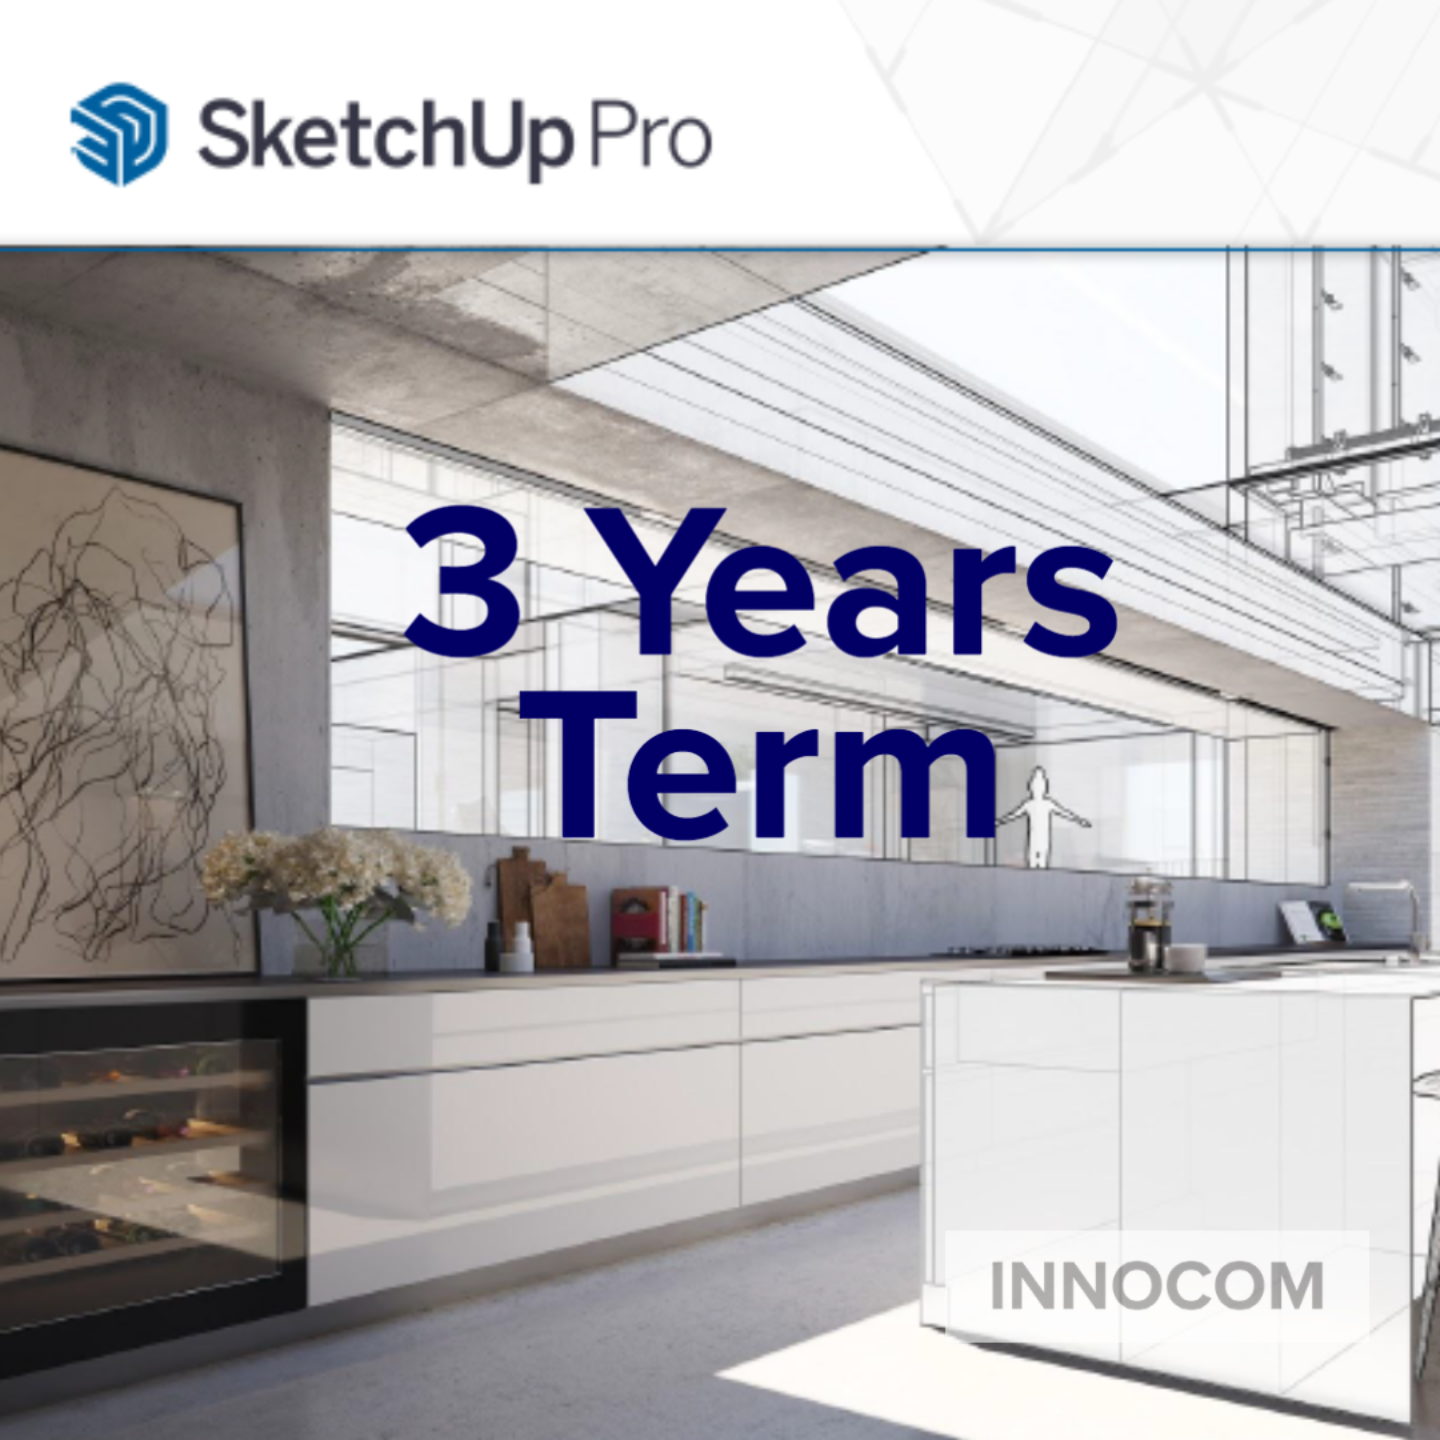 SketchUp Pro 2021-Annual (3 Years Term)